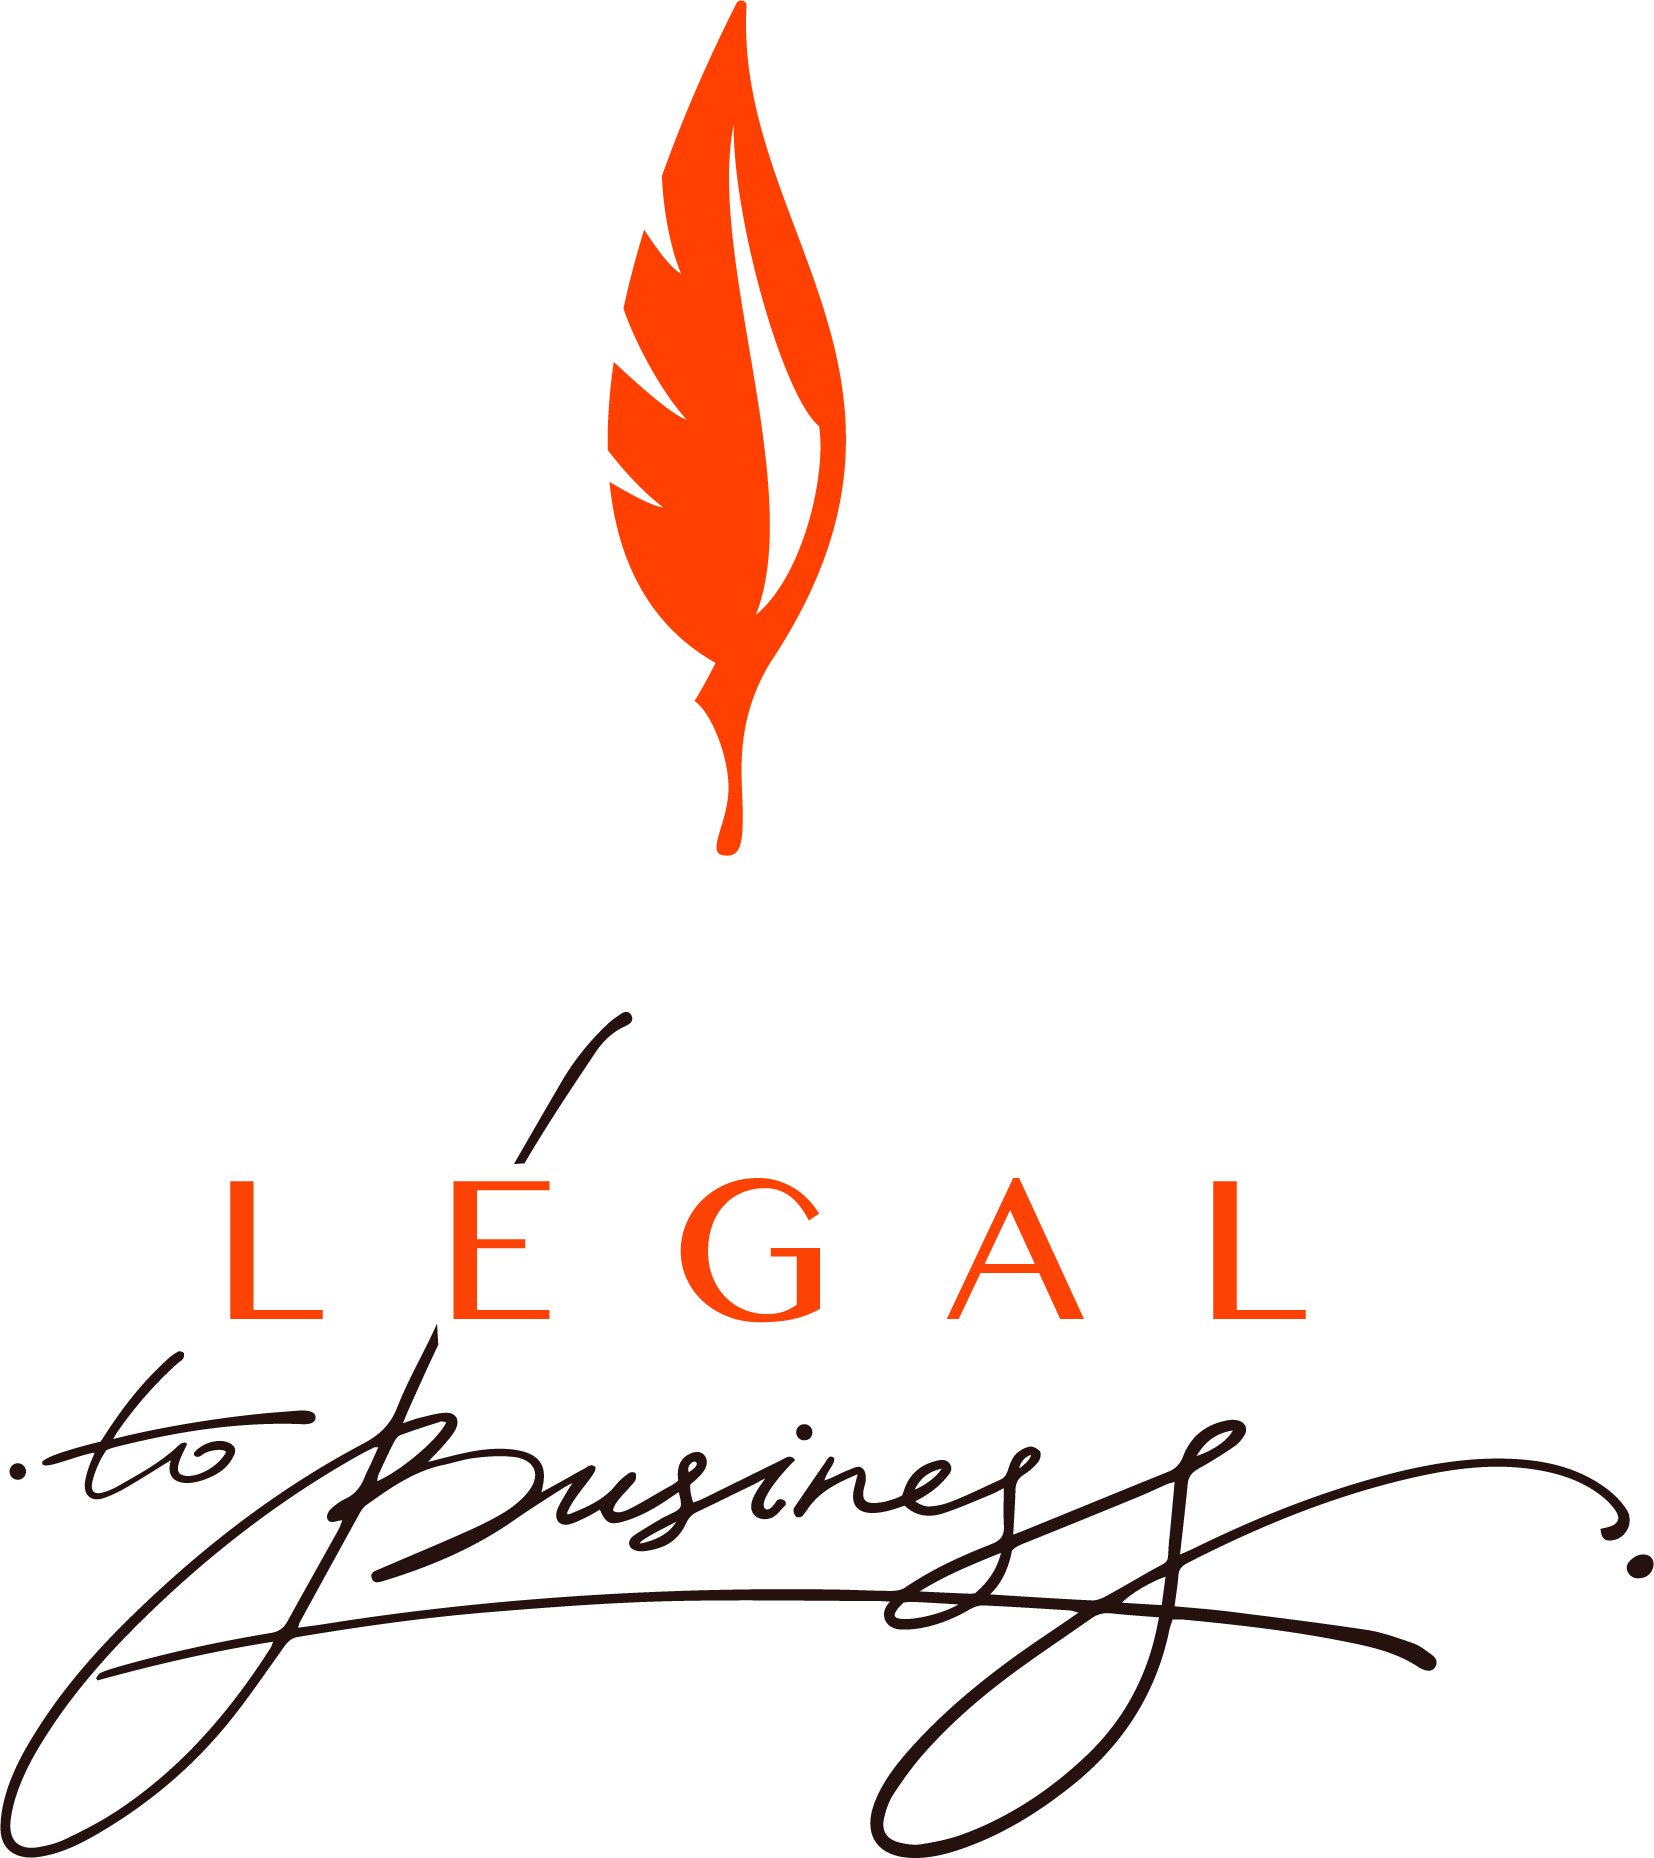 LEGAL TO BUSINESS